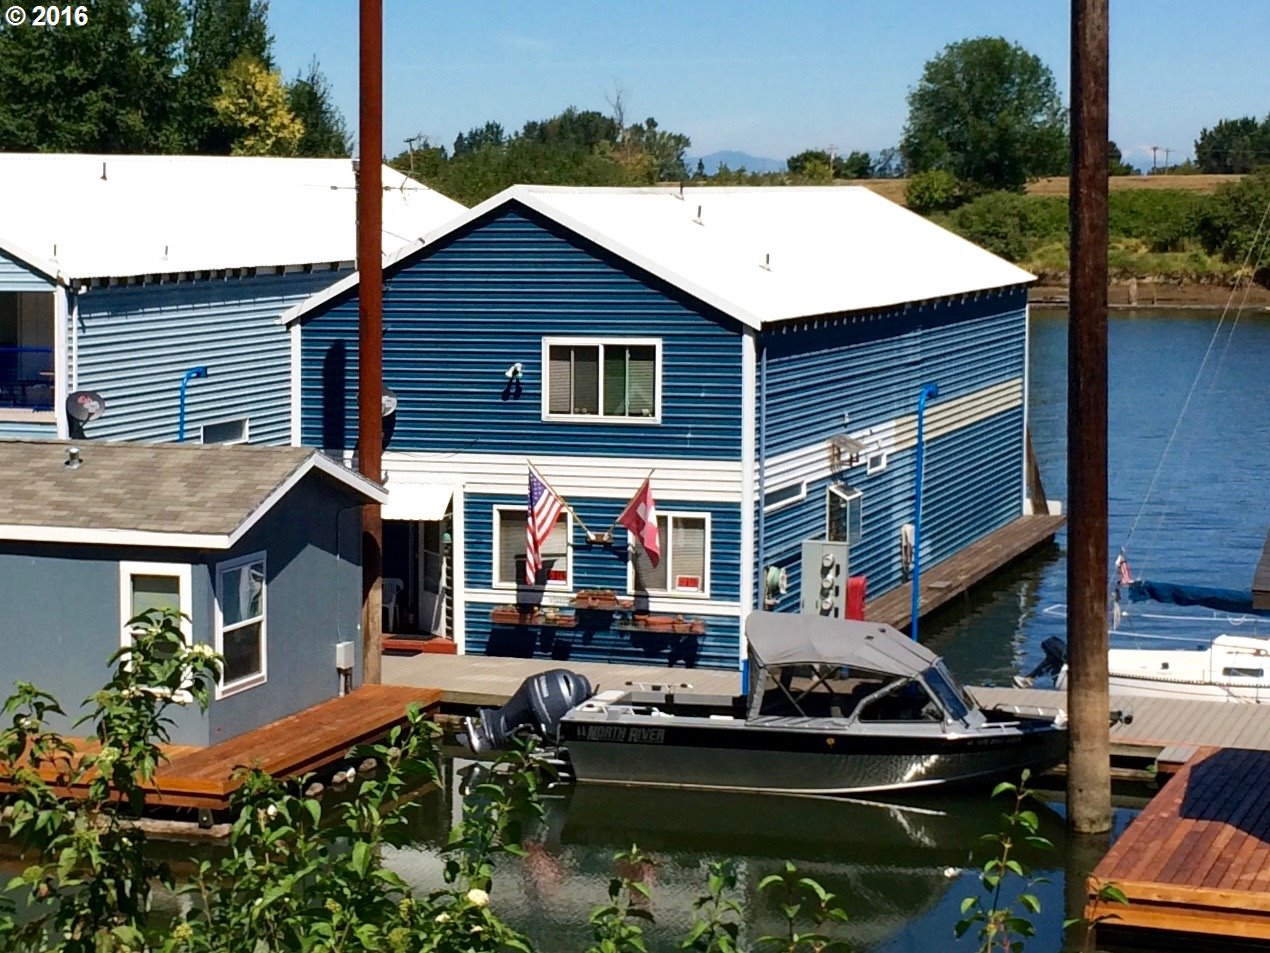 Floating Homes For Sale In Portland Oregon Houseboats: portland floating homes